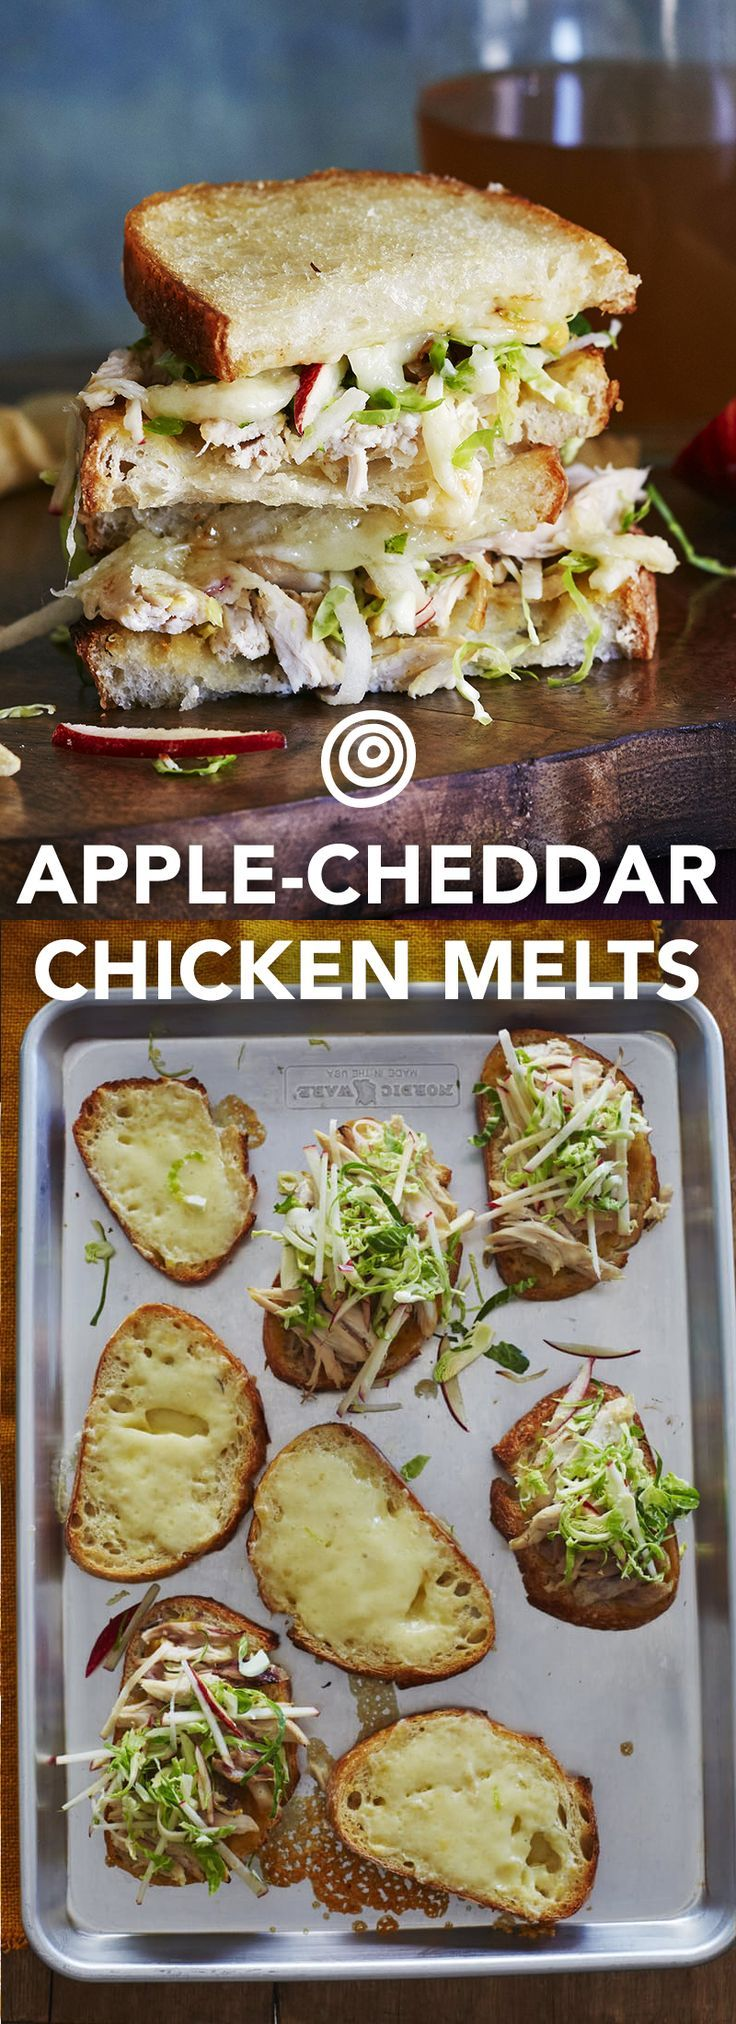 Apple, Cheddar & Chicken Melts Recipe. Add this to the top of your fall recipes and ideas list! This wonderful sheet pan meal is an easy way to serve up new autumn comfort foods for dinner - for a cro (Sourdough Sandwich Recipes)